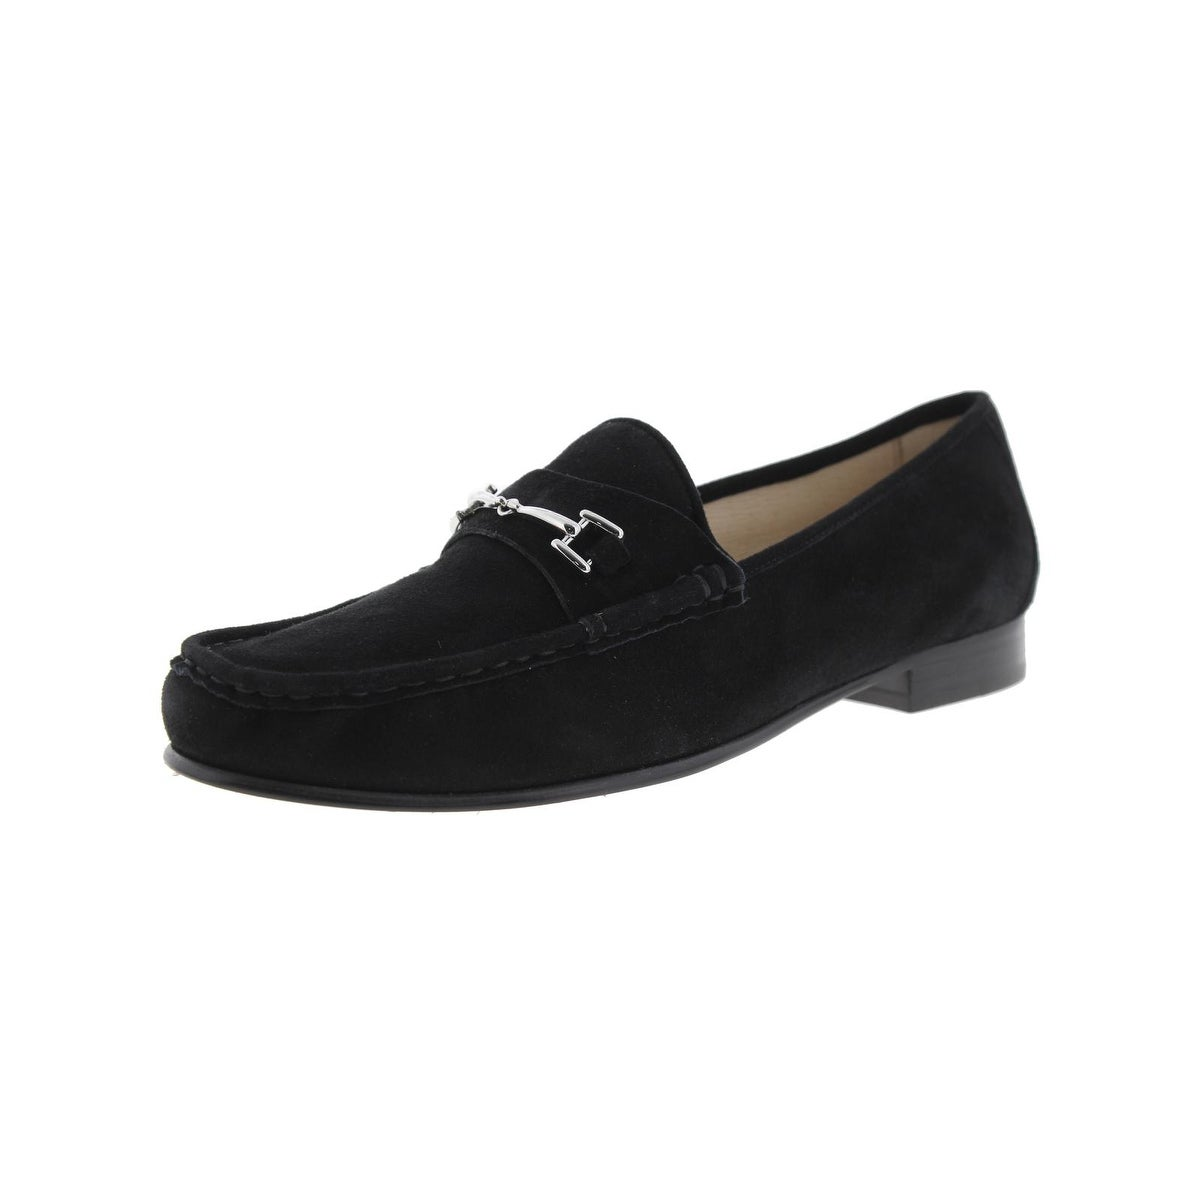 0dfb62eec874 Shop Sam Edelman Womens Talia Loafers Buckle - Free Shipping On Orders Over   45 - Overstock - 15412088